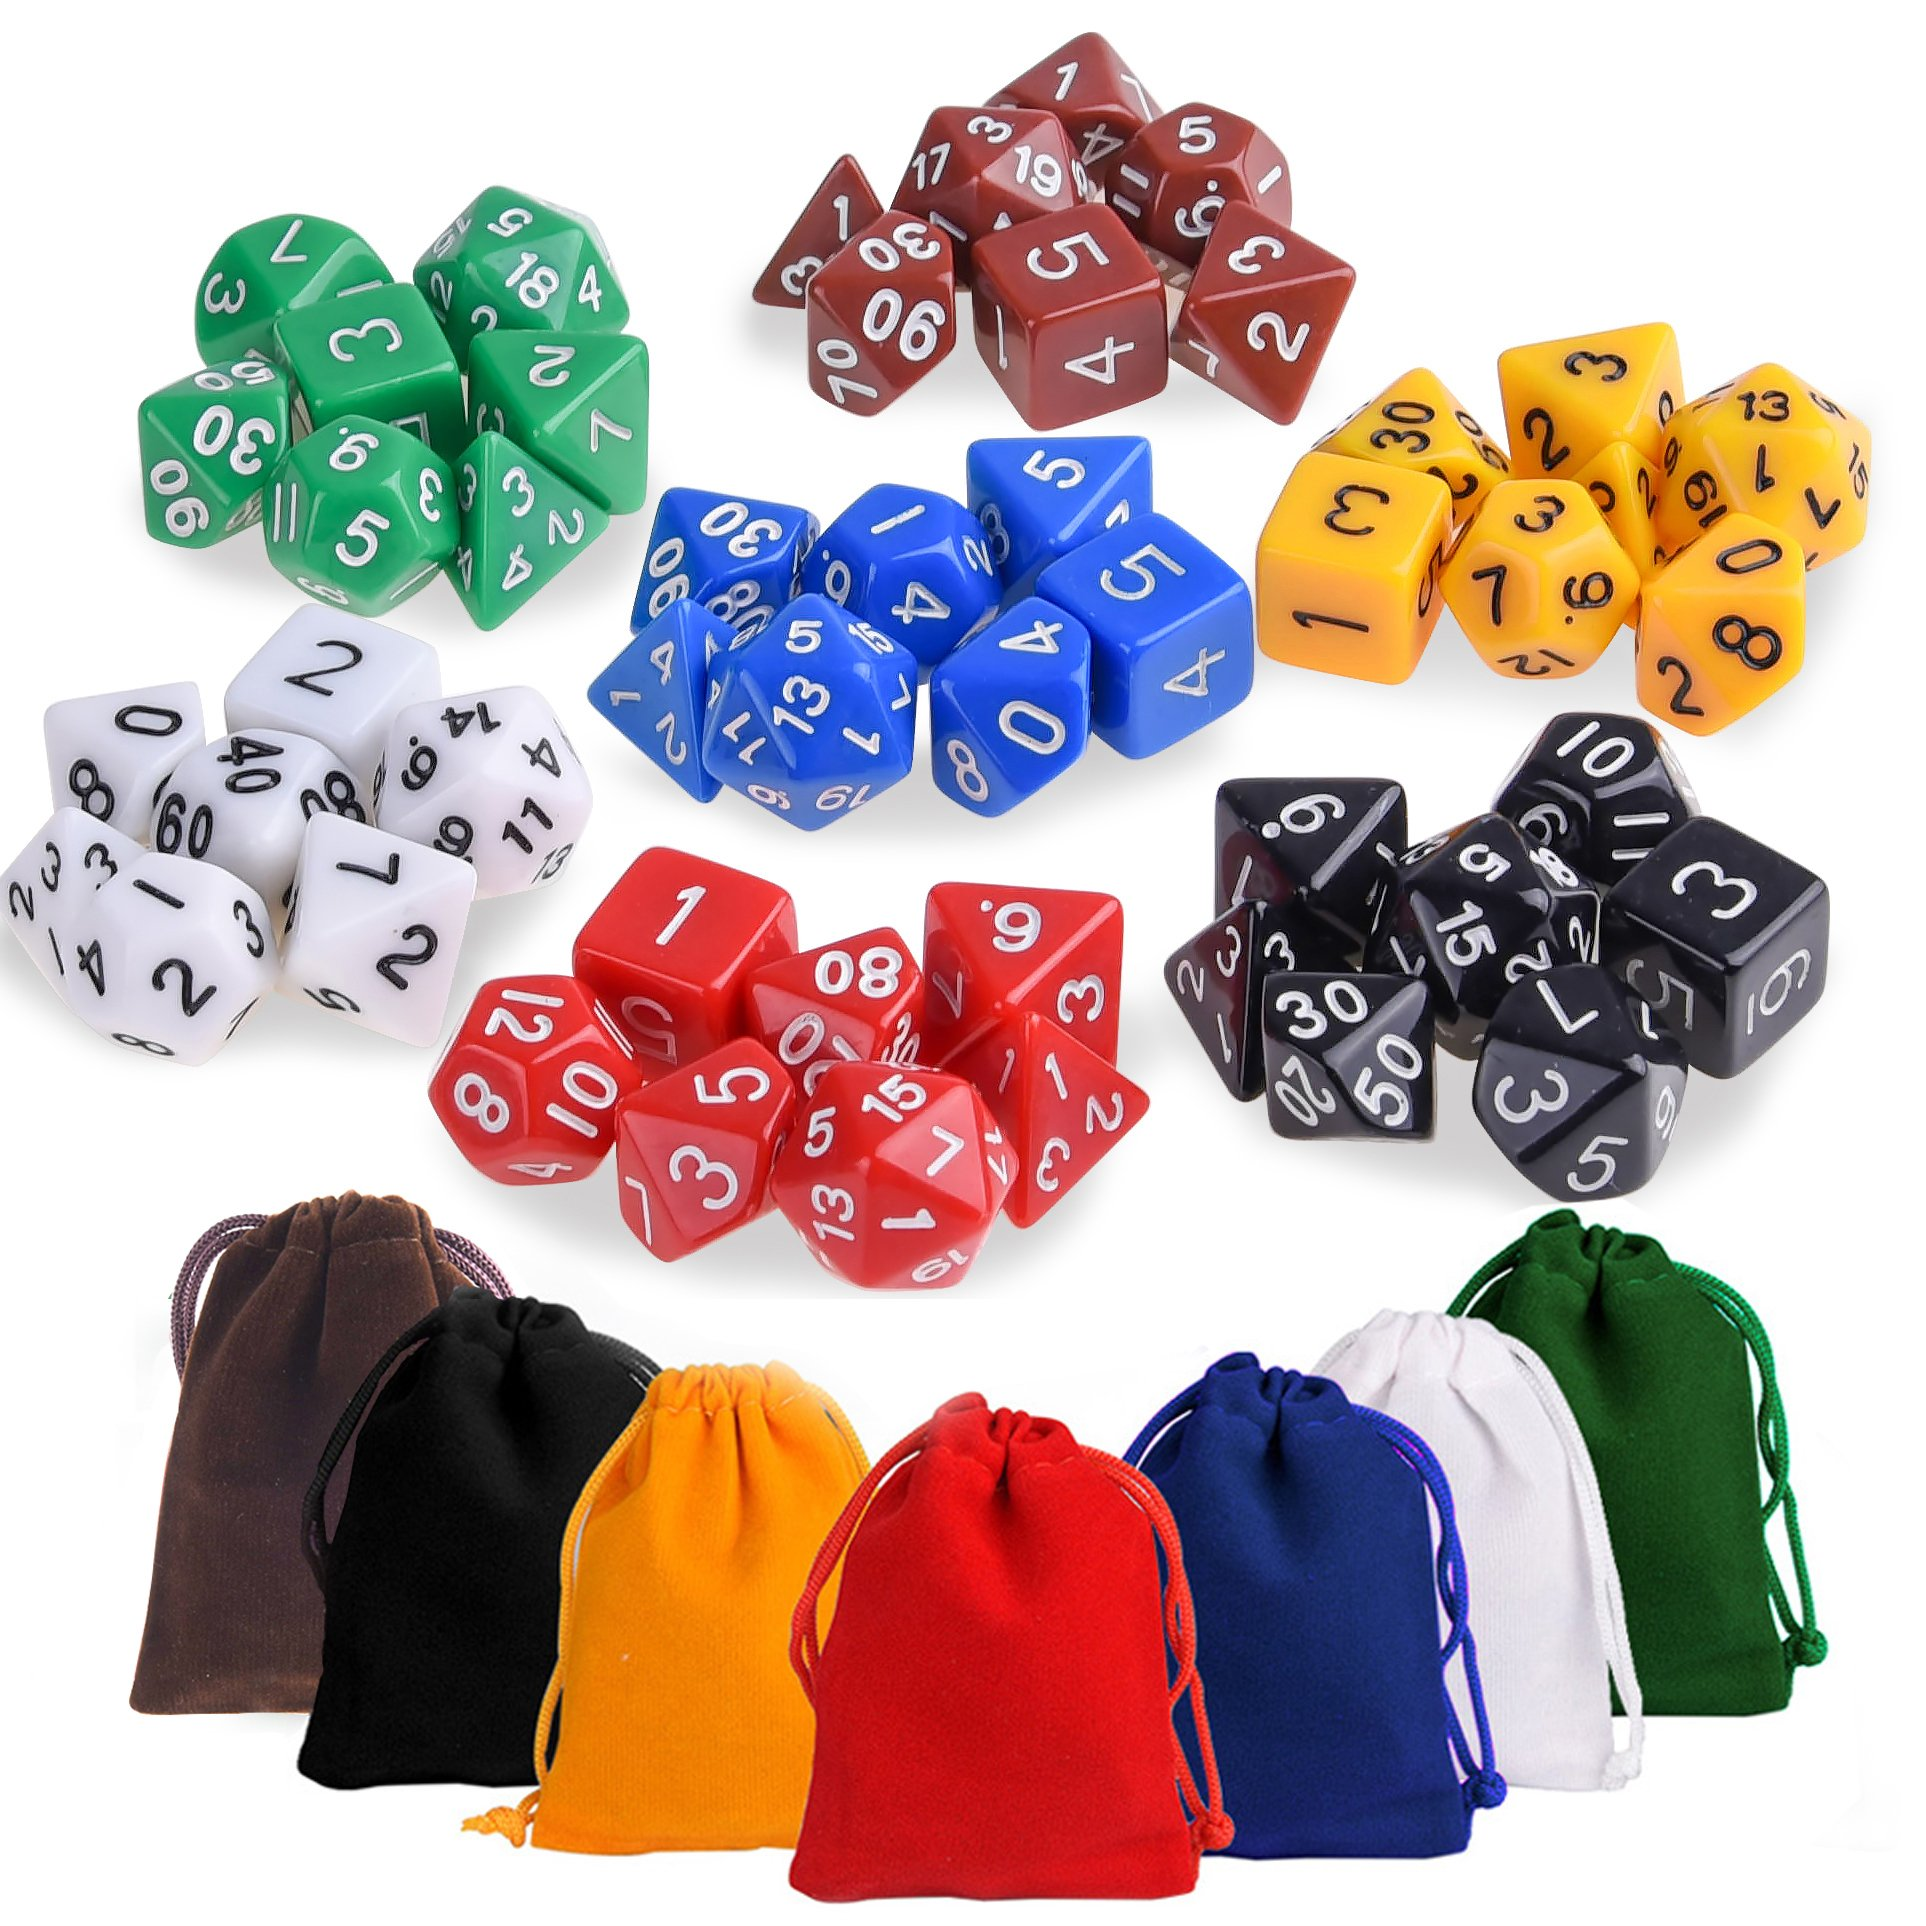 KUUQA DND Dice Set Polyhedral Game Dice Set with Dice Bags for Dungeons and Dragons DND D&D MTG RPG Card Games D% D20 D12 D10 D8 D6 D4, 7 x 7 (49 Pieces)